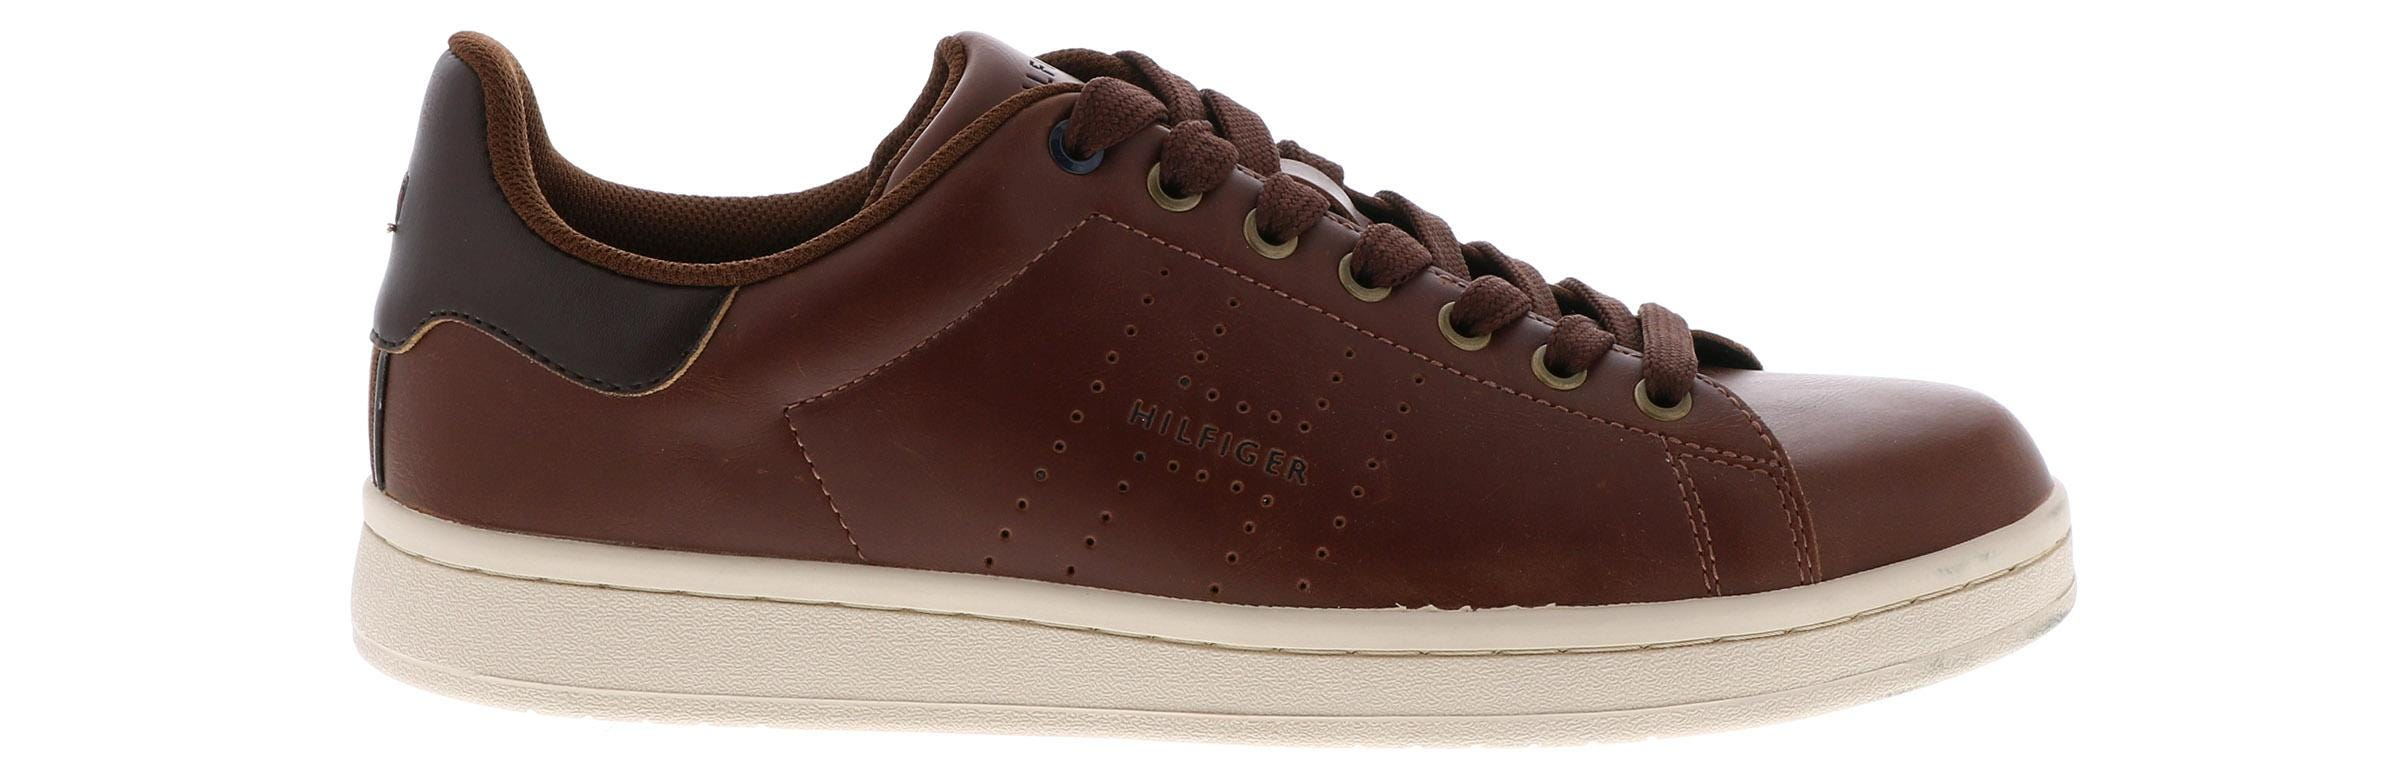 7a3aa02386332b Tommy Hilfiger Mens Liston Cognac 9 Medium US for sale online